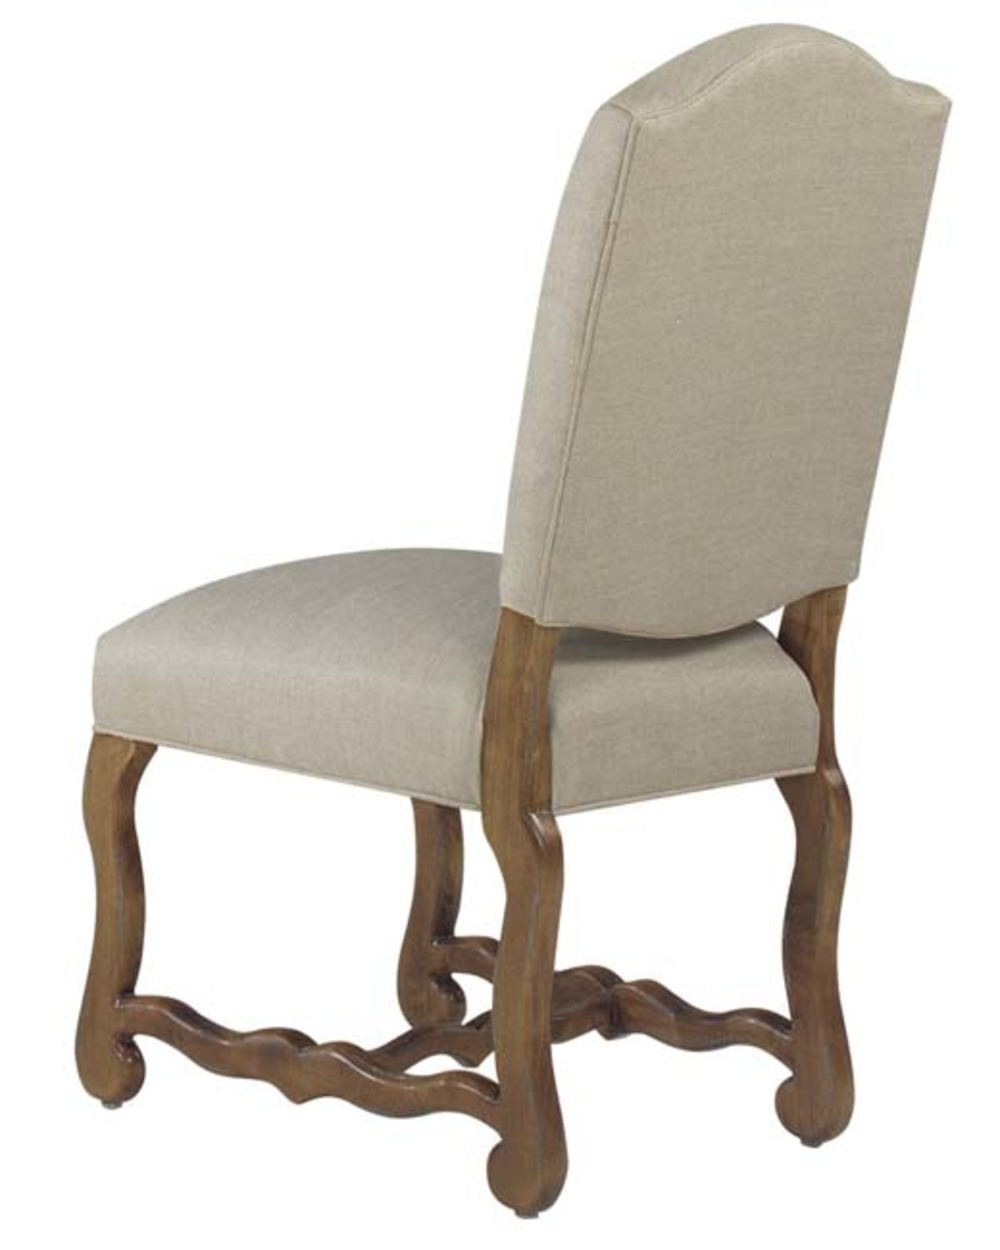 Designmaster Furniture - Chaumont Studio Chair